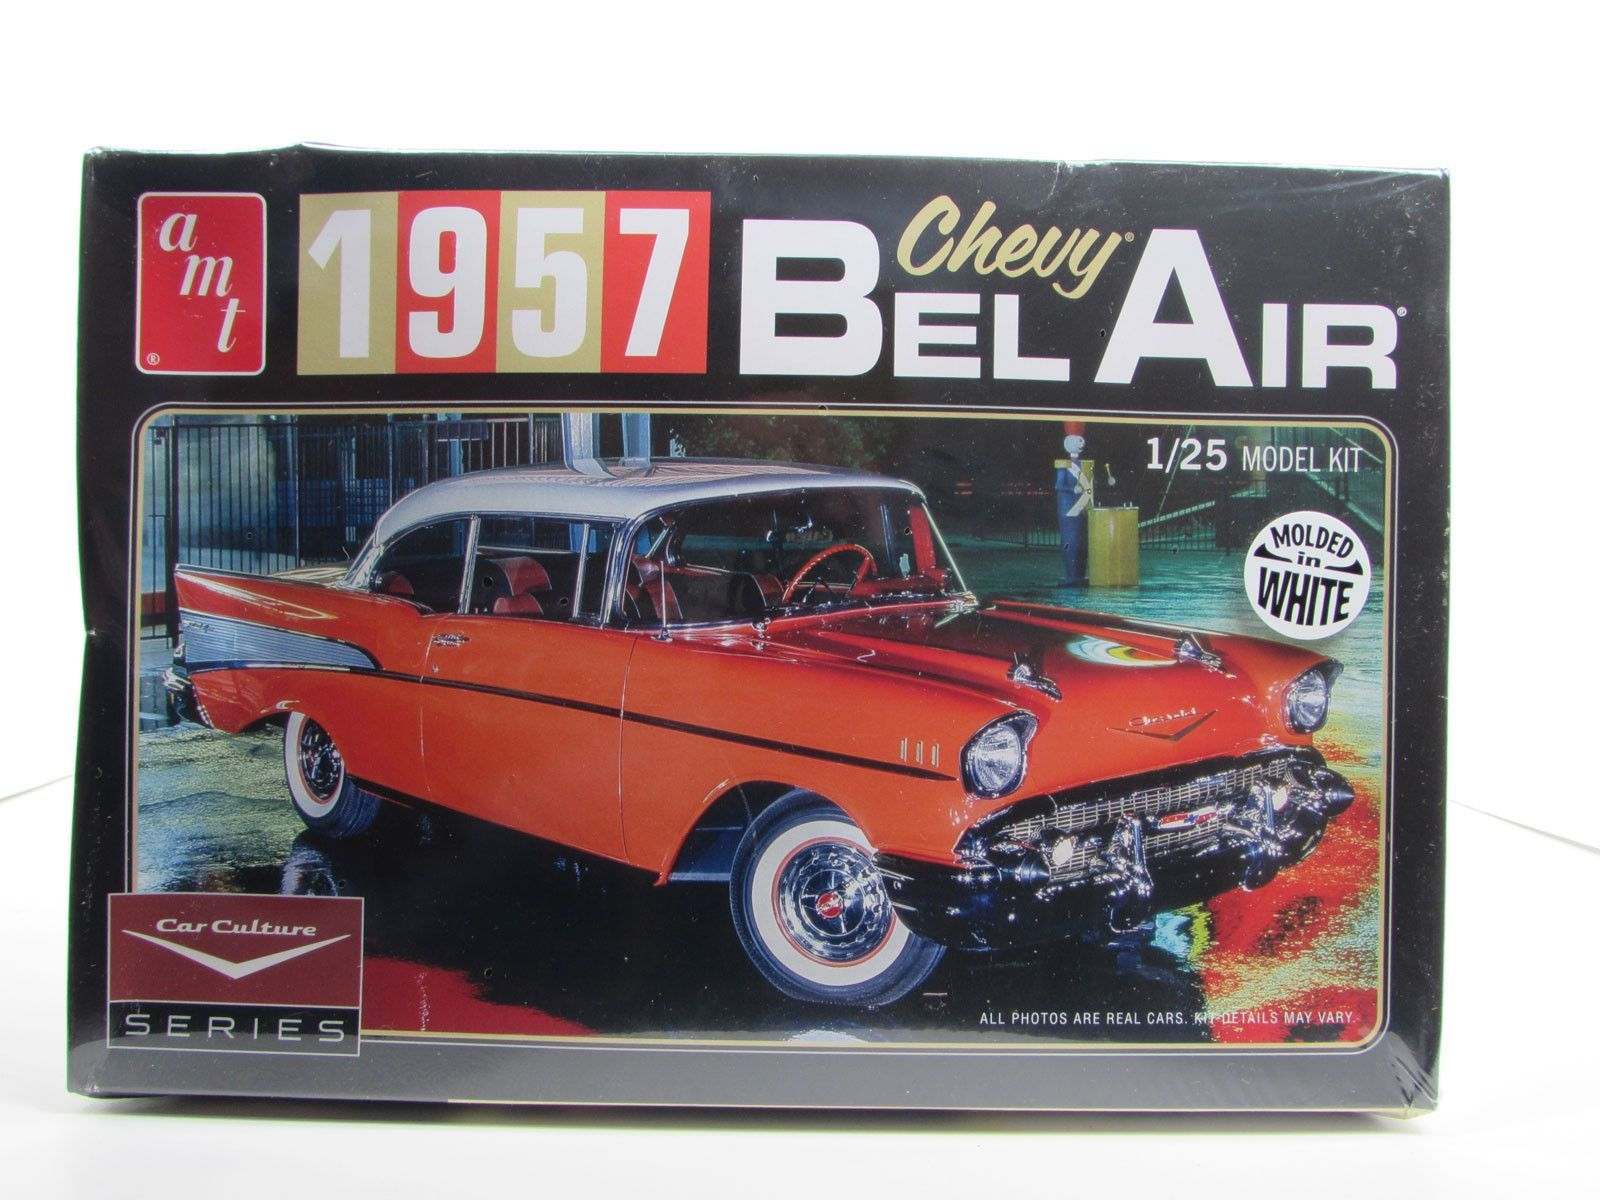 This Is The 1957 Chevy Bel Air Model Car Kit By Amt In 1 25 Scale